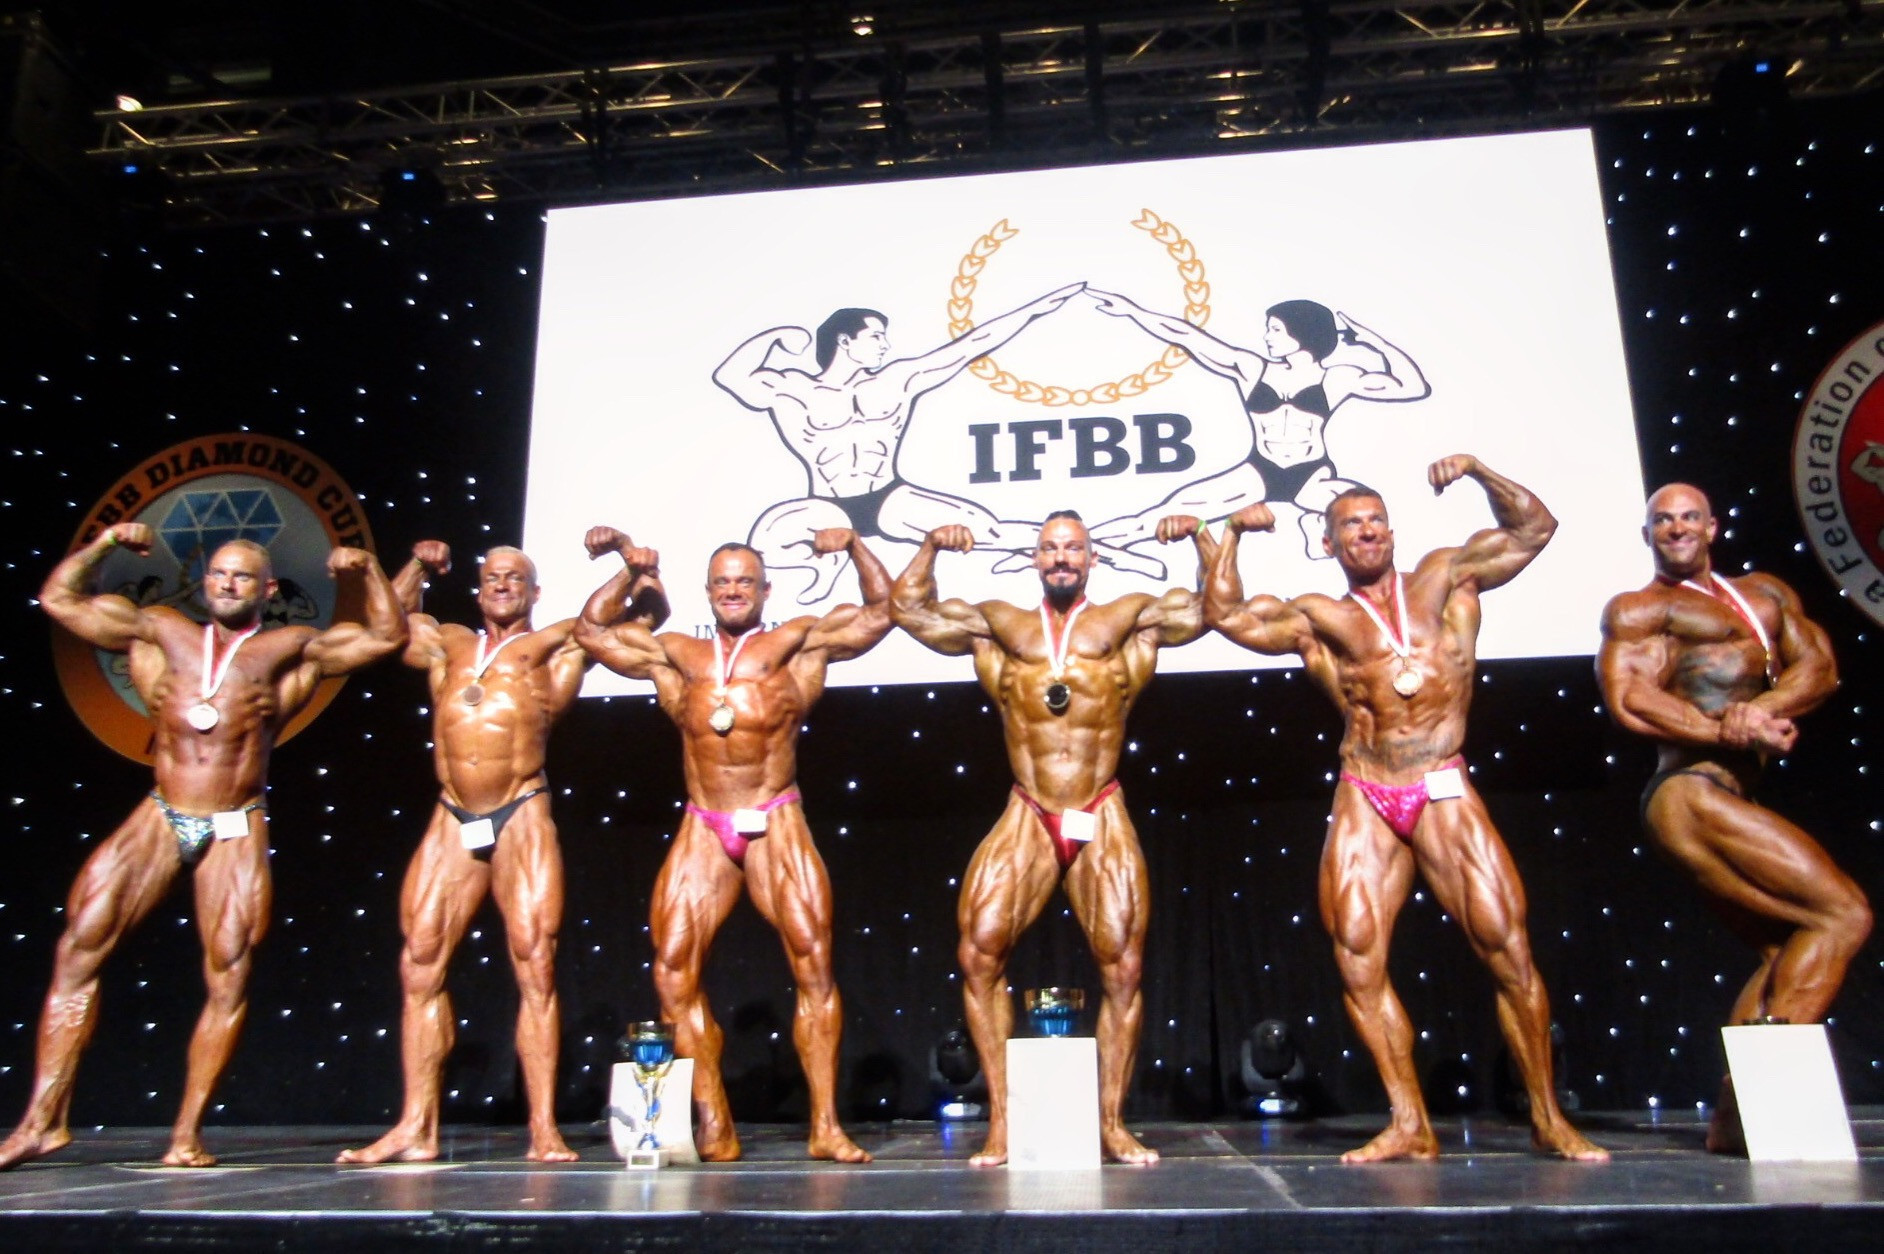 IFBB Diamond Cup Malta rescheduled to August